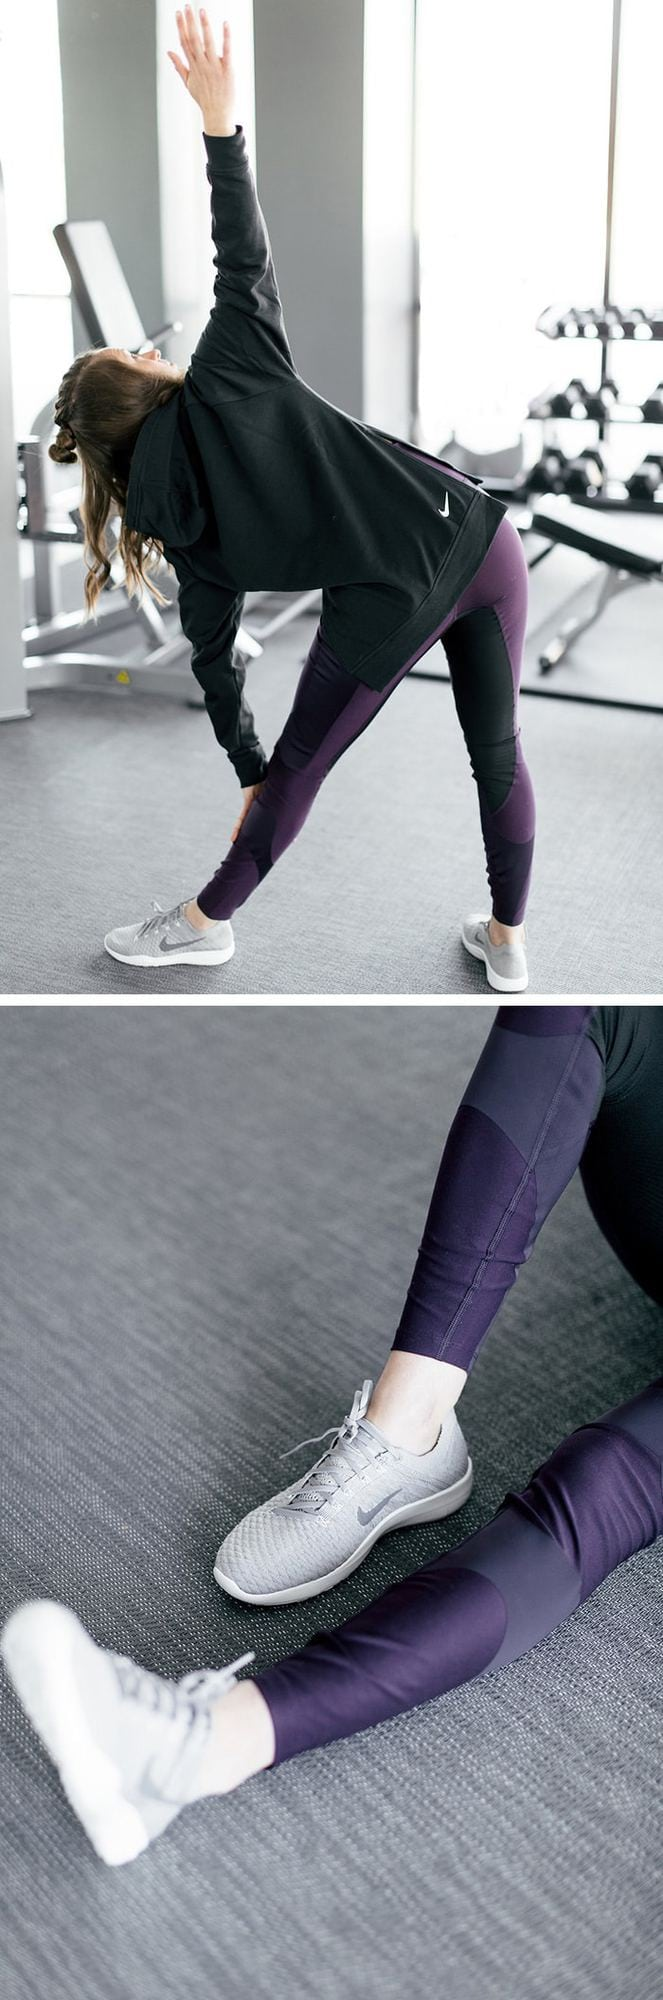 Need to go from the gym to run errands? You'll love these high-rise purple pants paired with a sleek black hoodie with simple side slits! Don't forget about Nike's classic Frees. We chose grey because they go with everything!